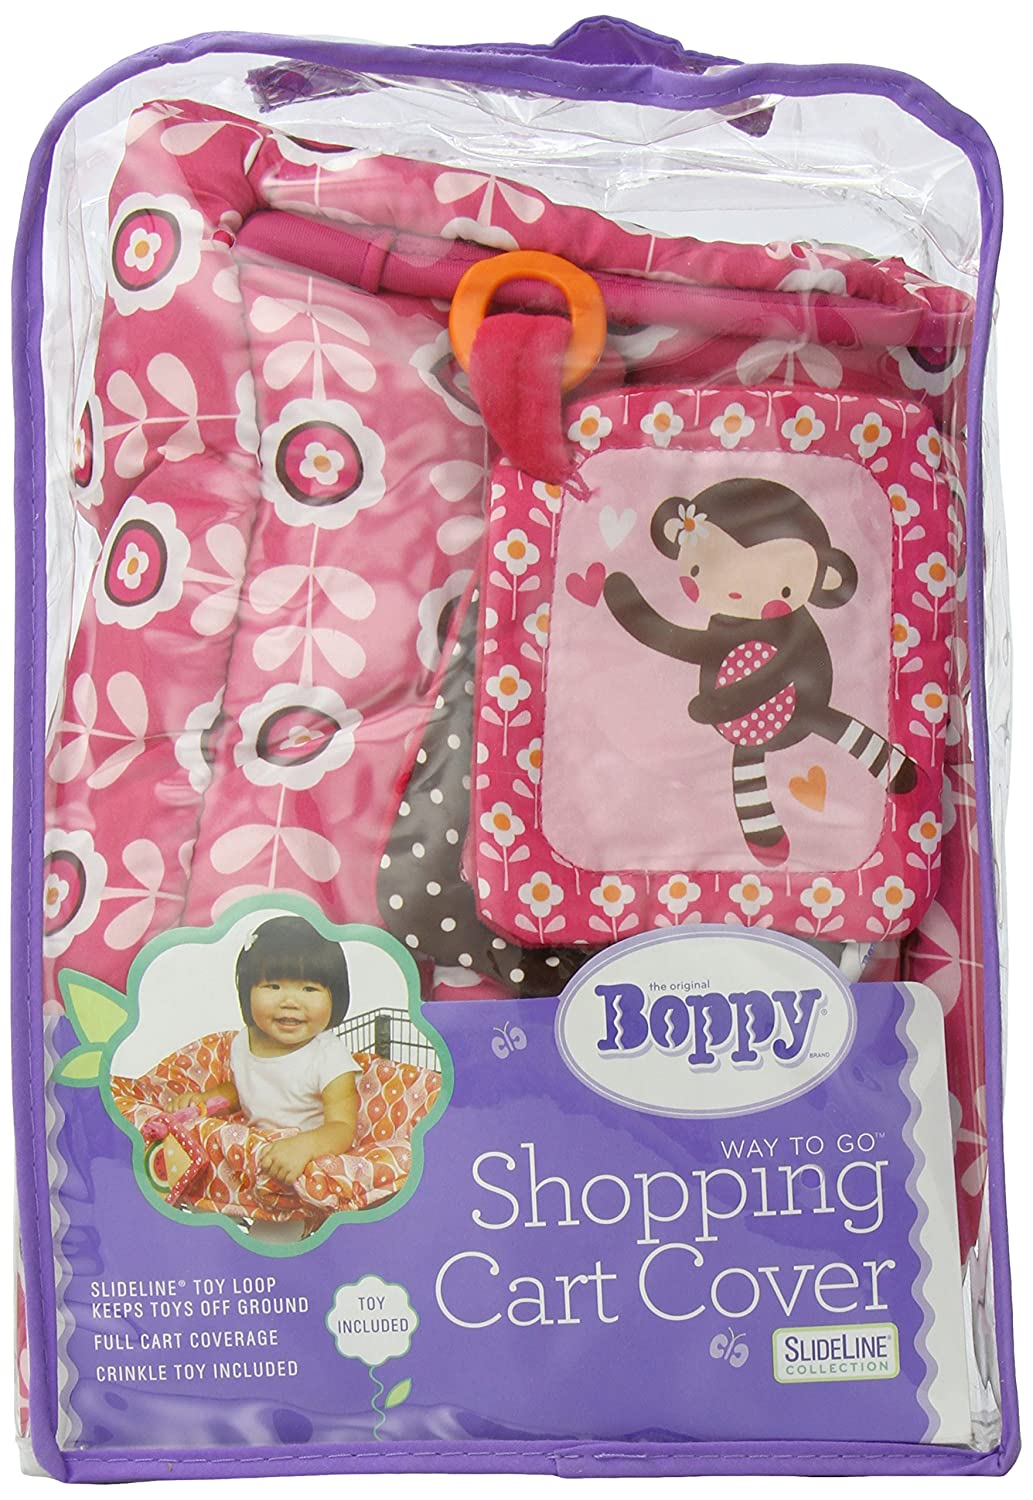 Amazon.com : Boppy Shopping Cart Cover, Olivia (Discontinued by ...